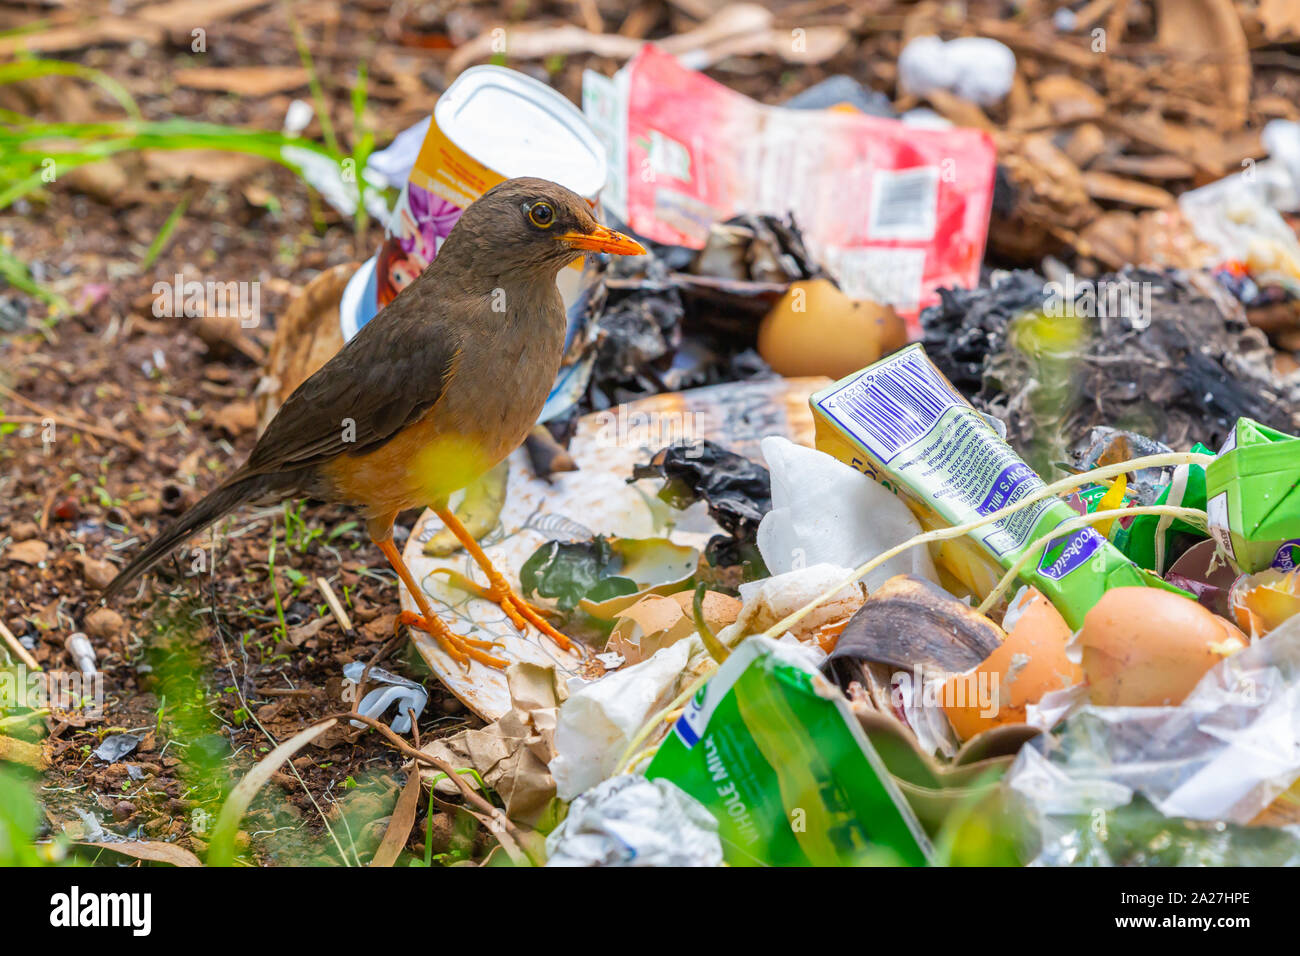 Colour photograph of the olive thrush (Turdus olivaceus) bird foraging on ground through discarded rubbish. Stock Photo